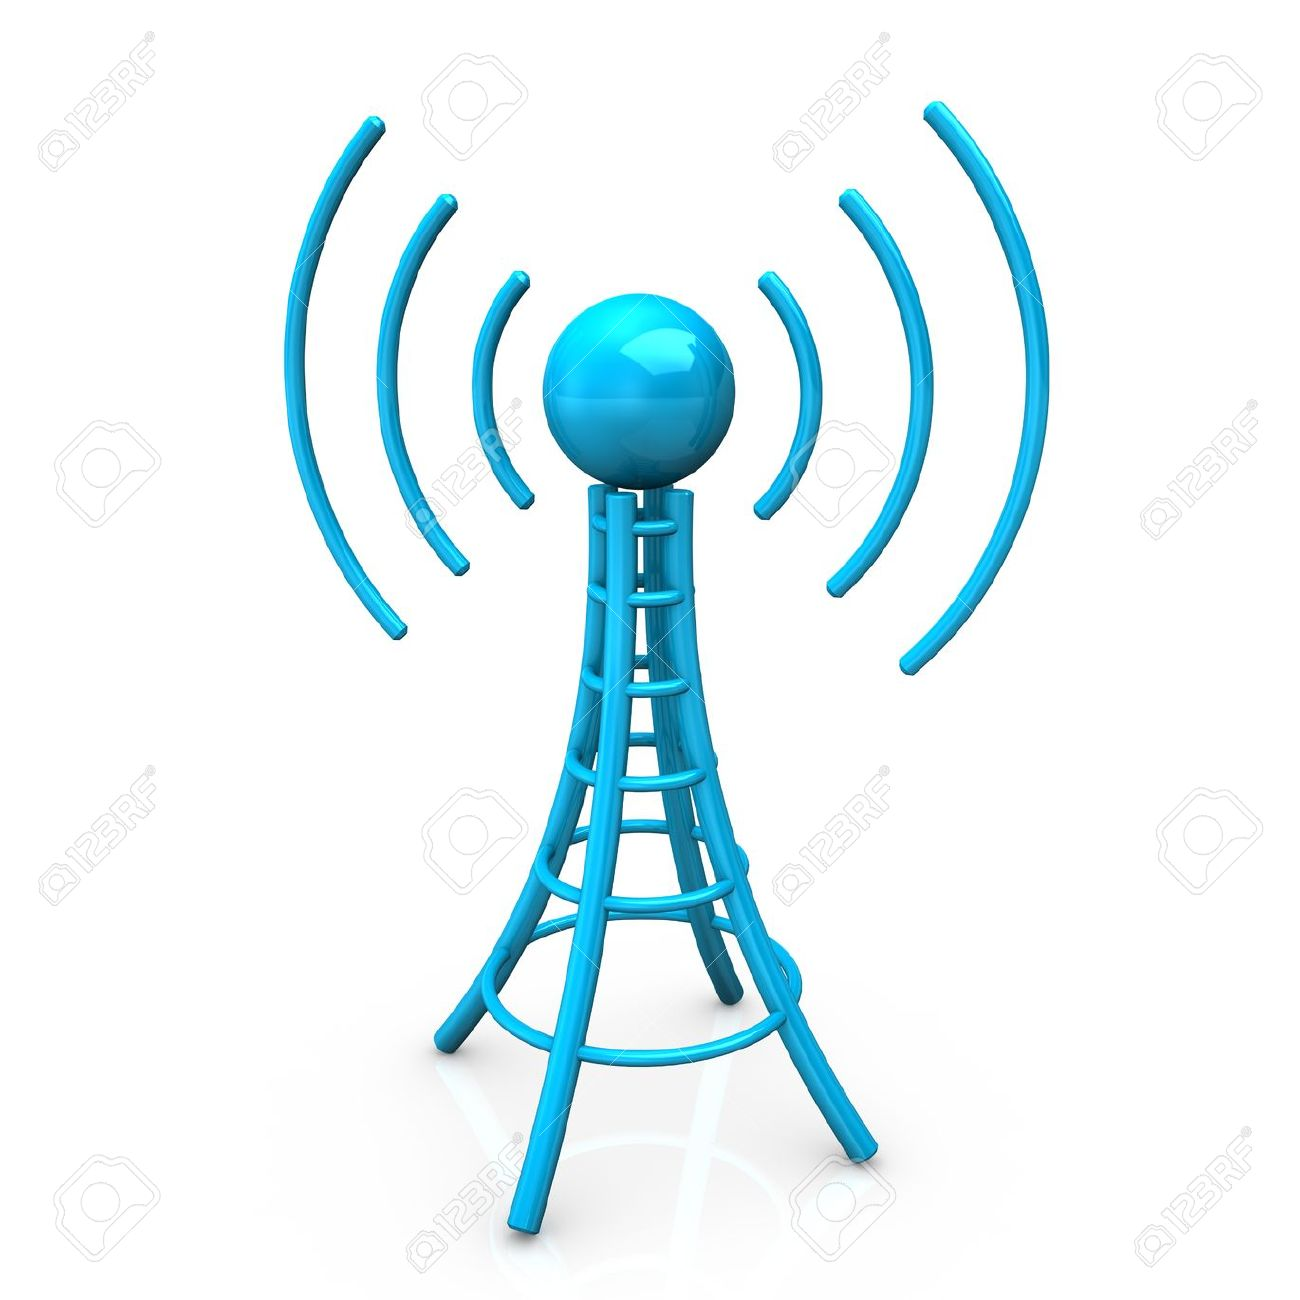 Blue Antenna Tower With Radio Waves, On White Background. Stock.